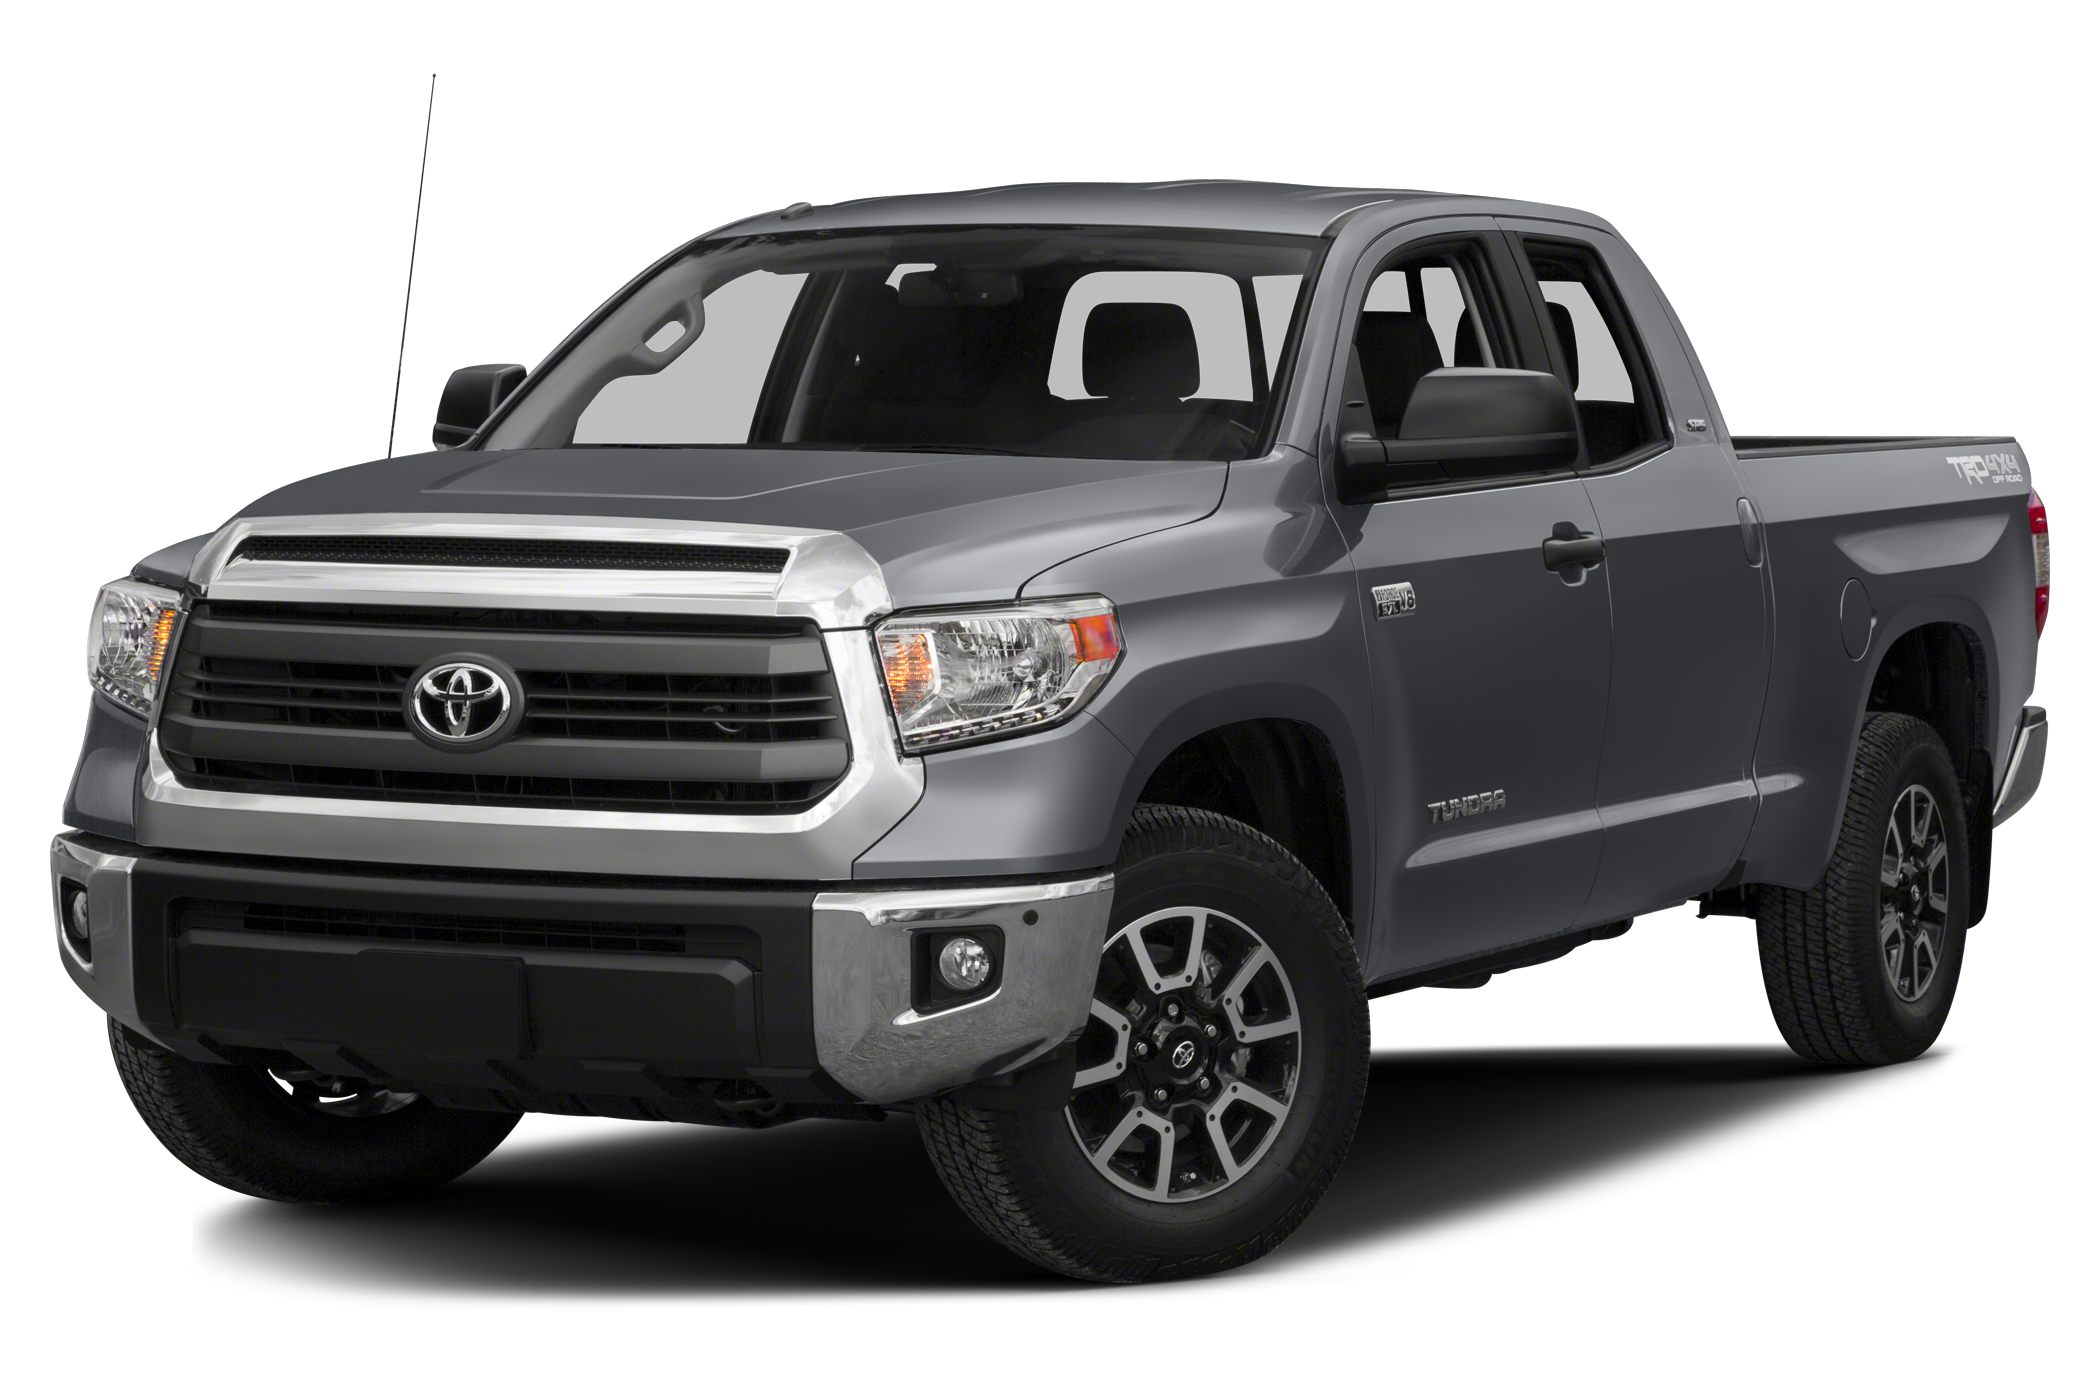 2015 Toyota Tundra SR5 Crew Cab Pickup for sale in Bryan for $38,003 with 0 miles.